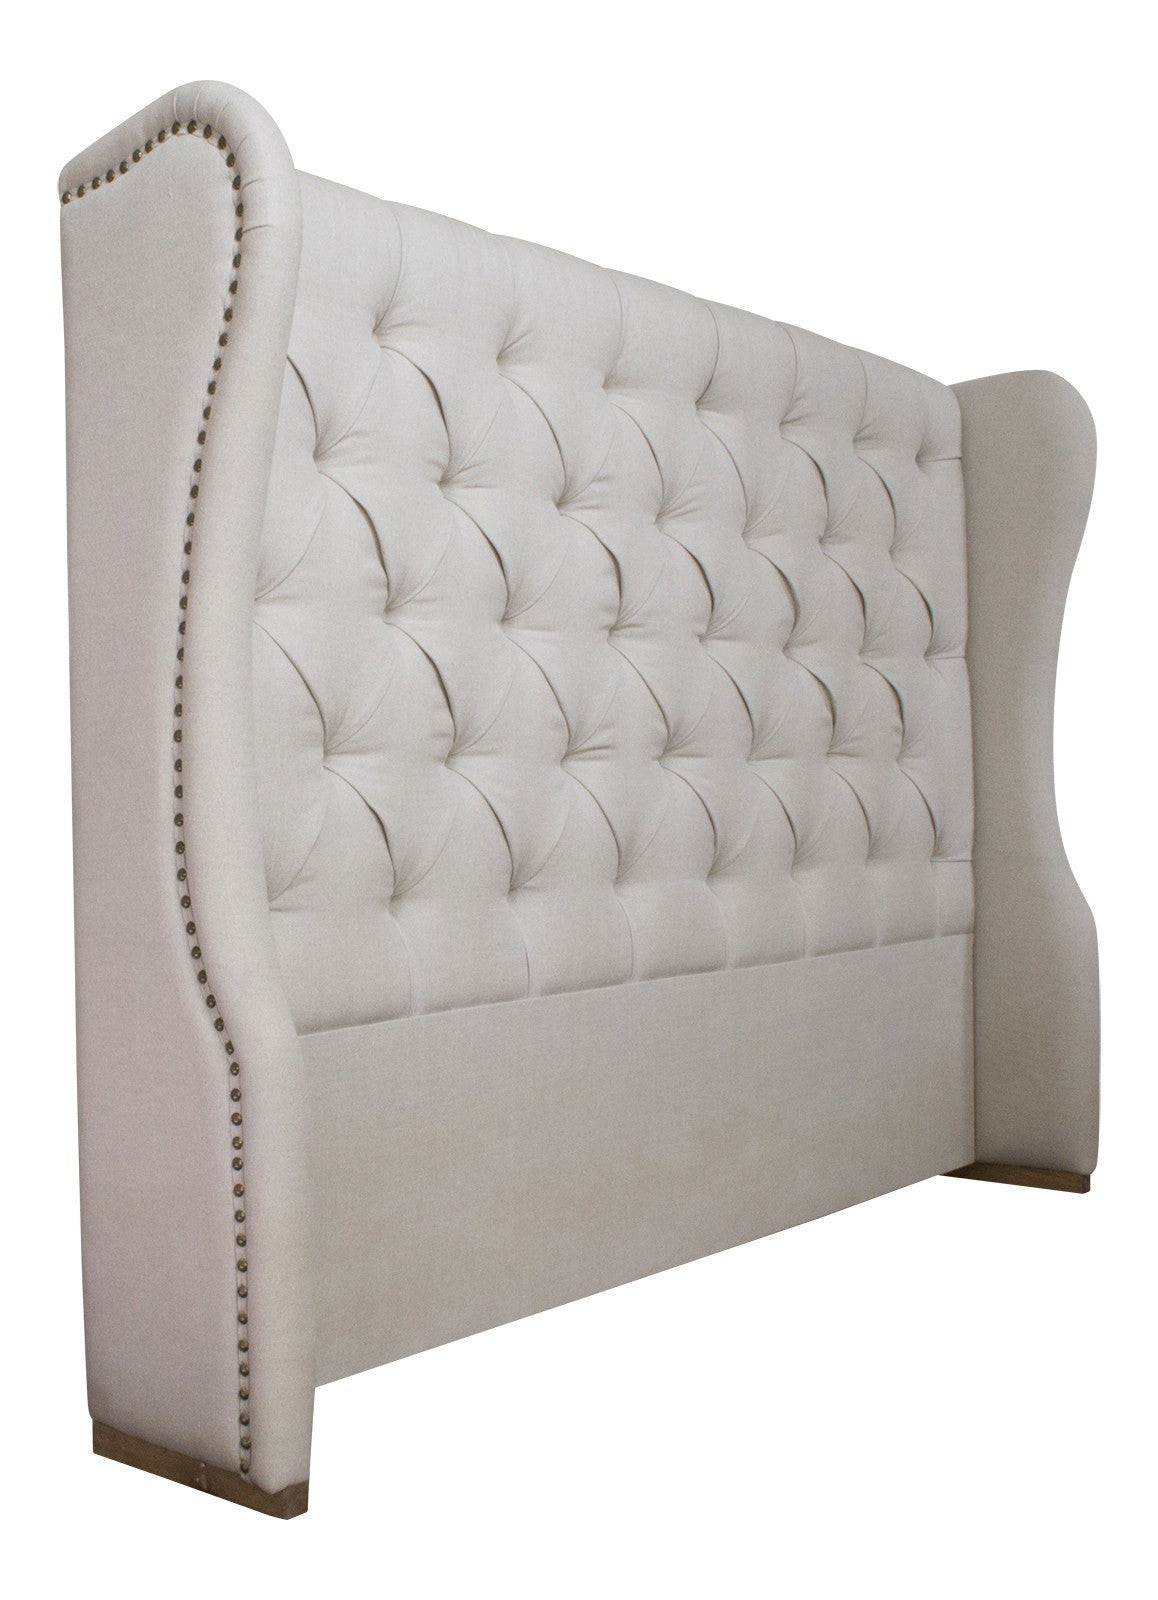 sumptuous upholstered headboards style - upholstered linen headboard la  residence interiors - Sumptuous Upholstered Headboards Style Bedroom Large Sumptuous